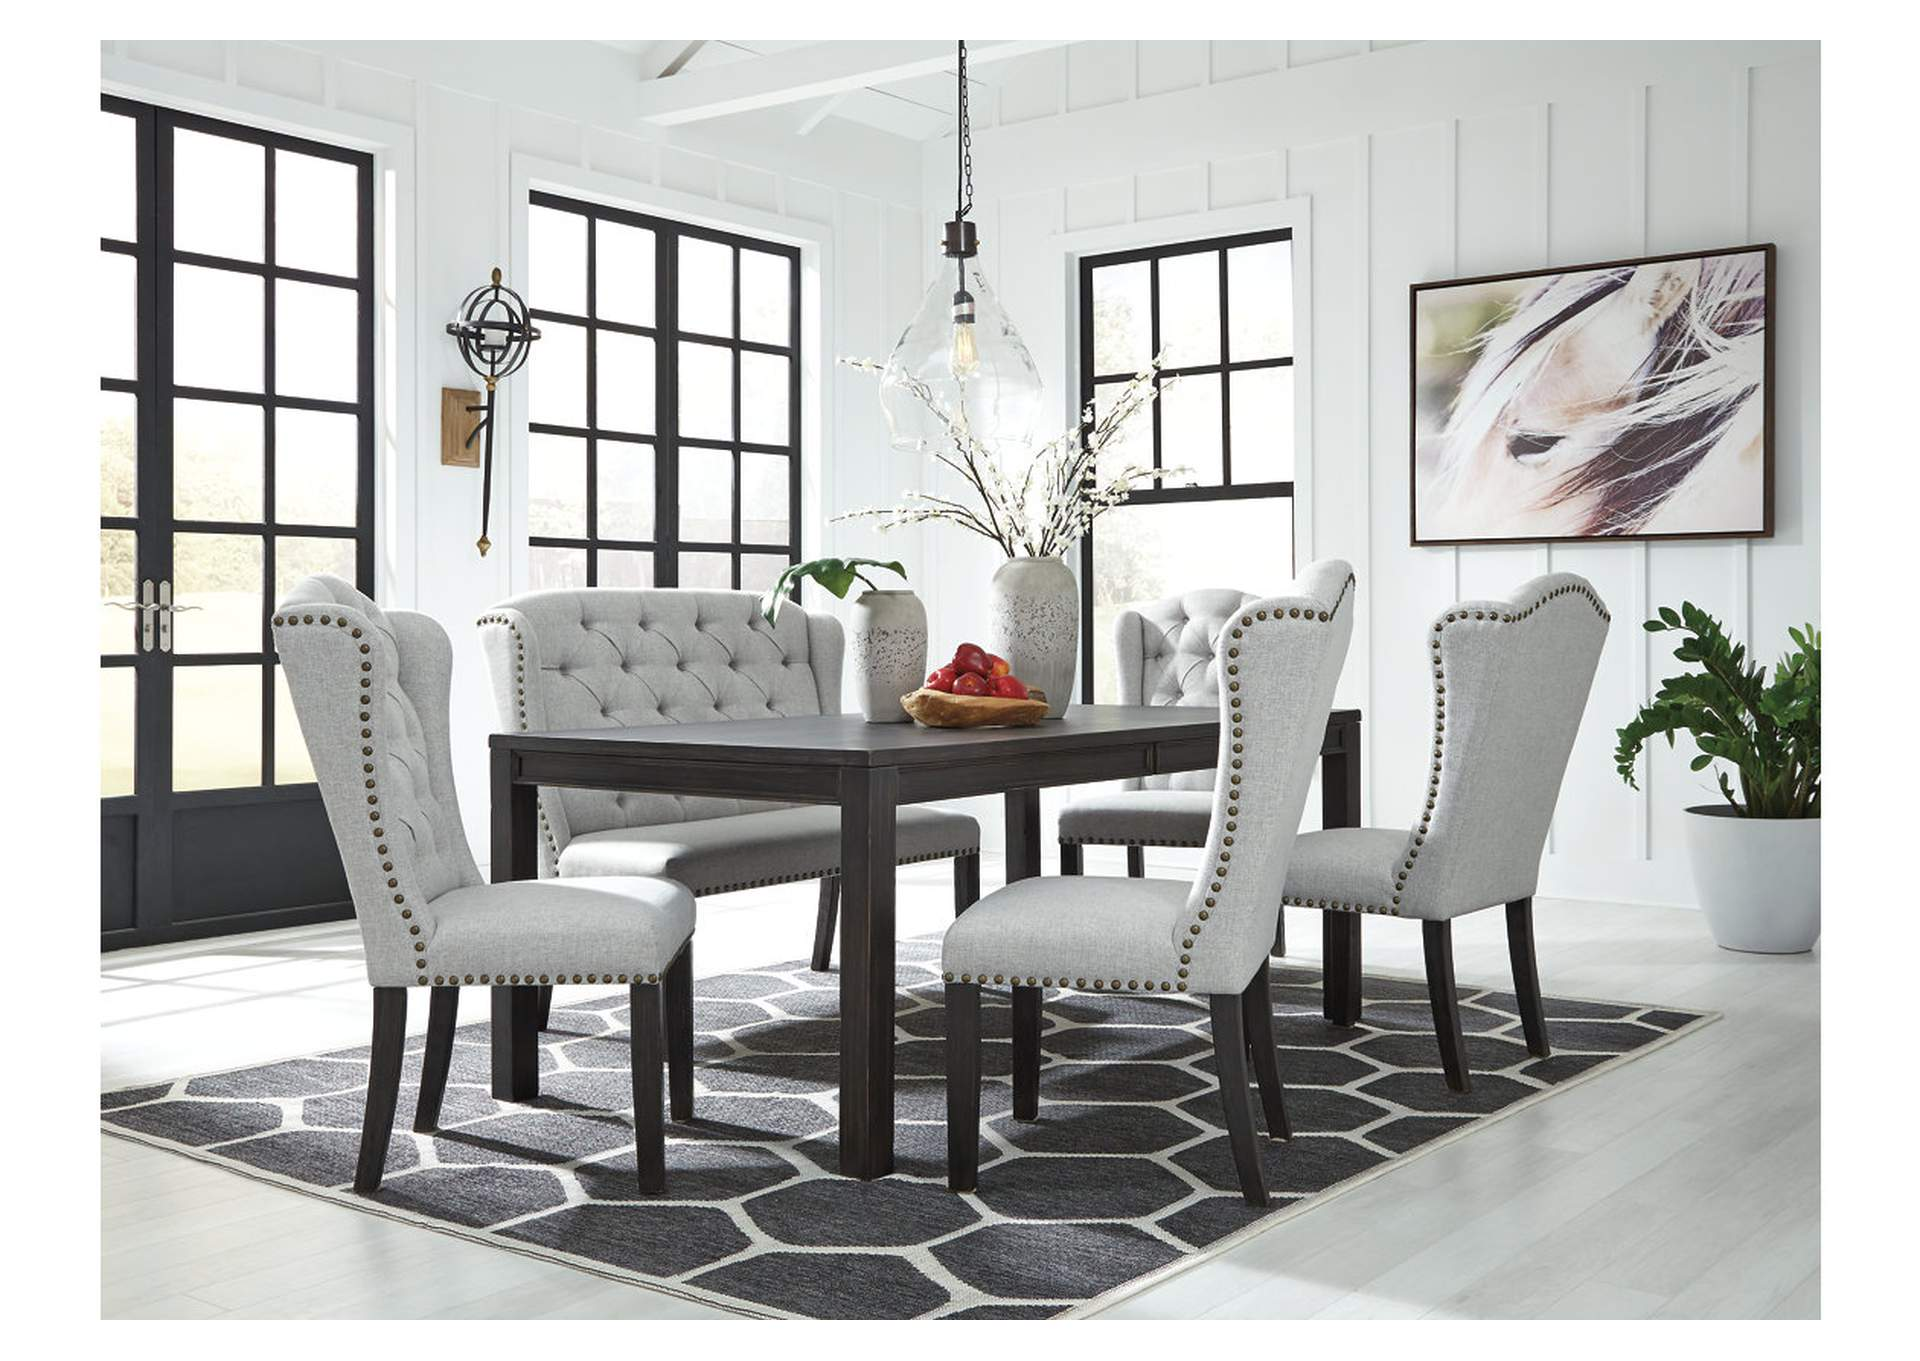 Jeanette 6-Piece Dining Room Set,Ashley